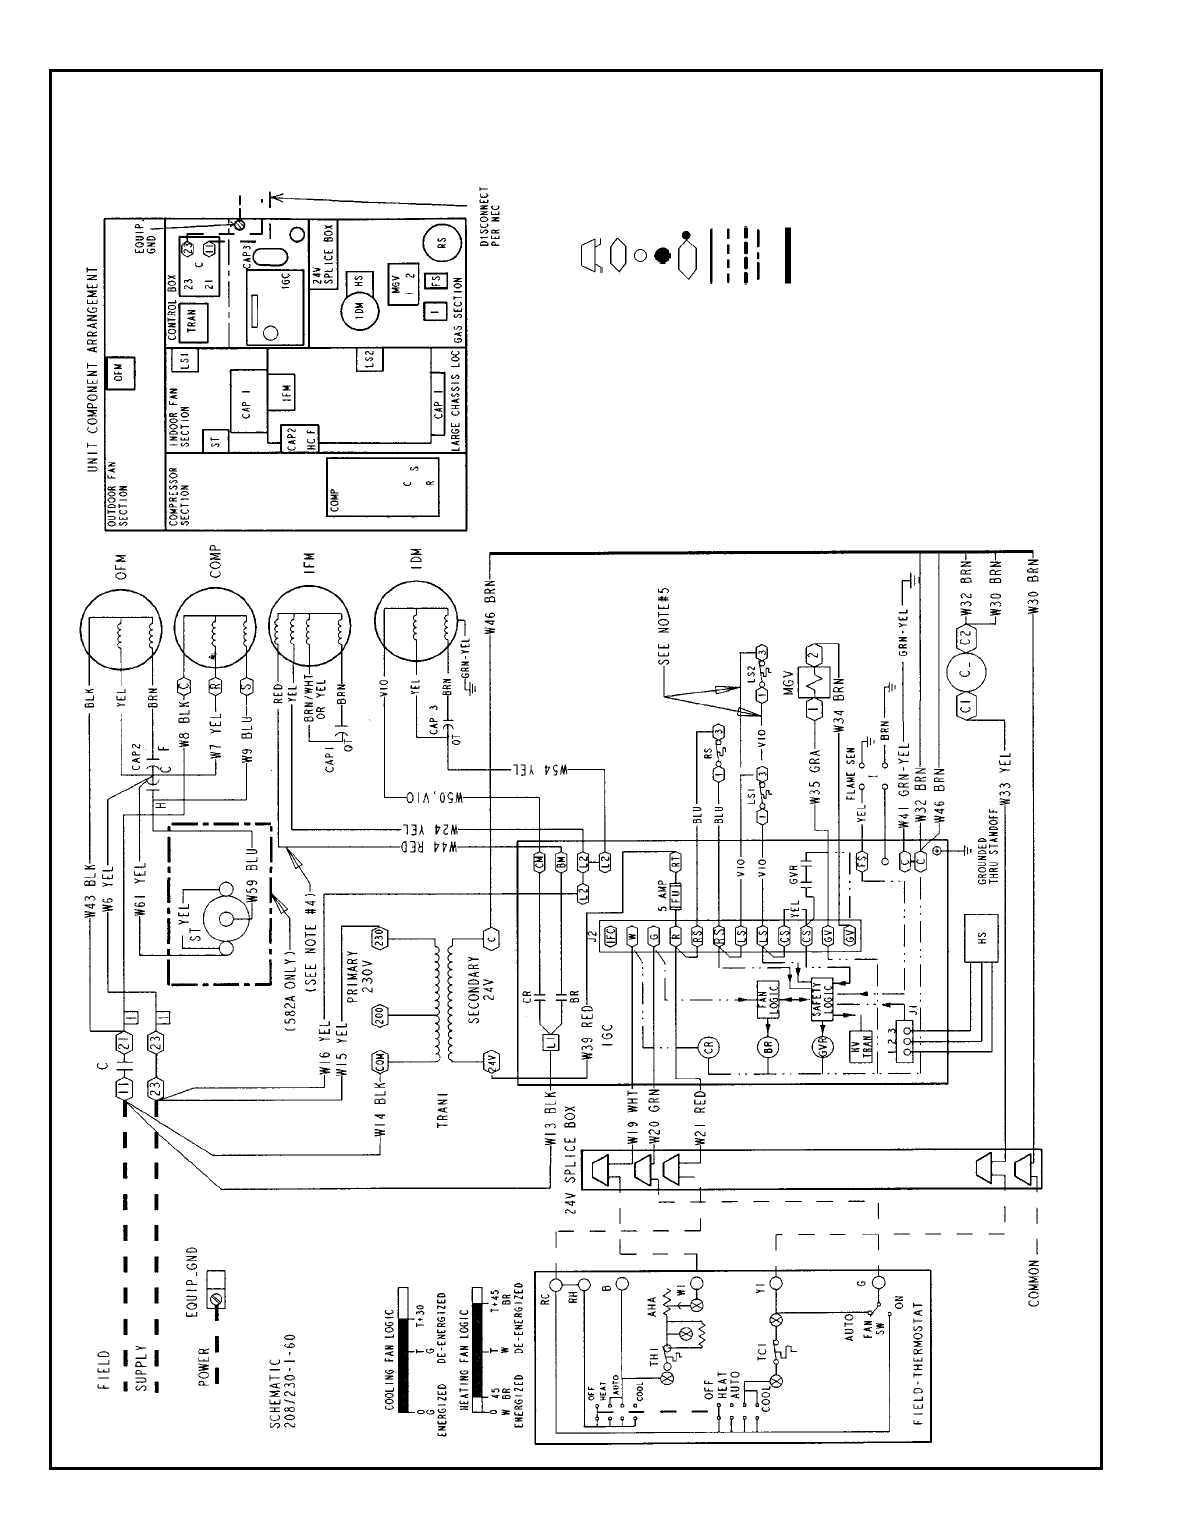 Bryant 582a Typical Wiring Schematic 582a018 060 208 230